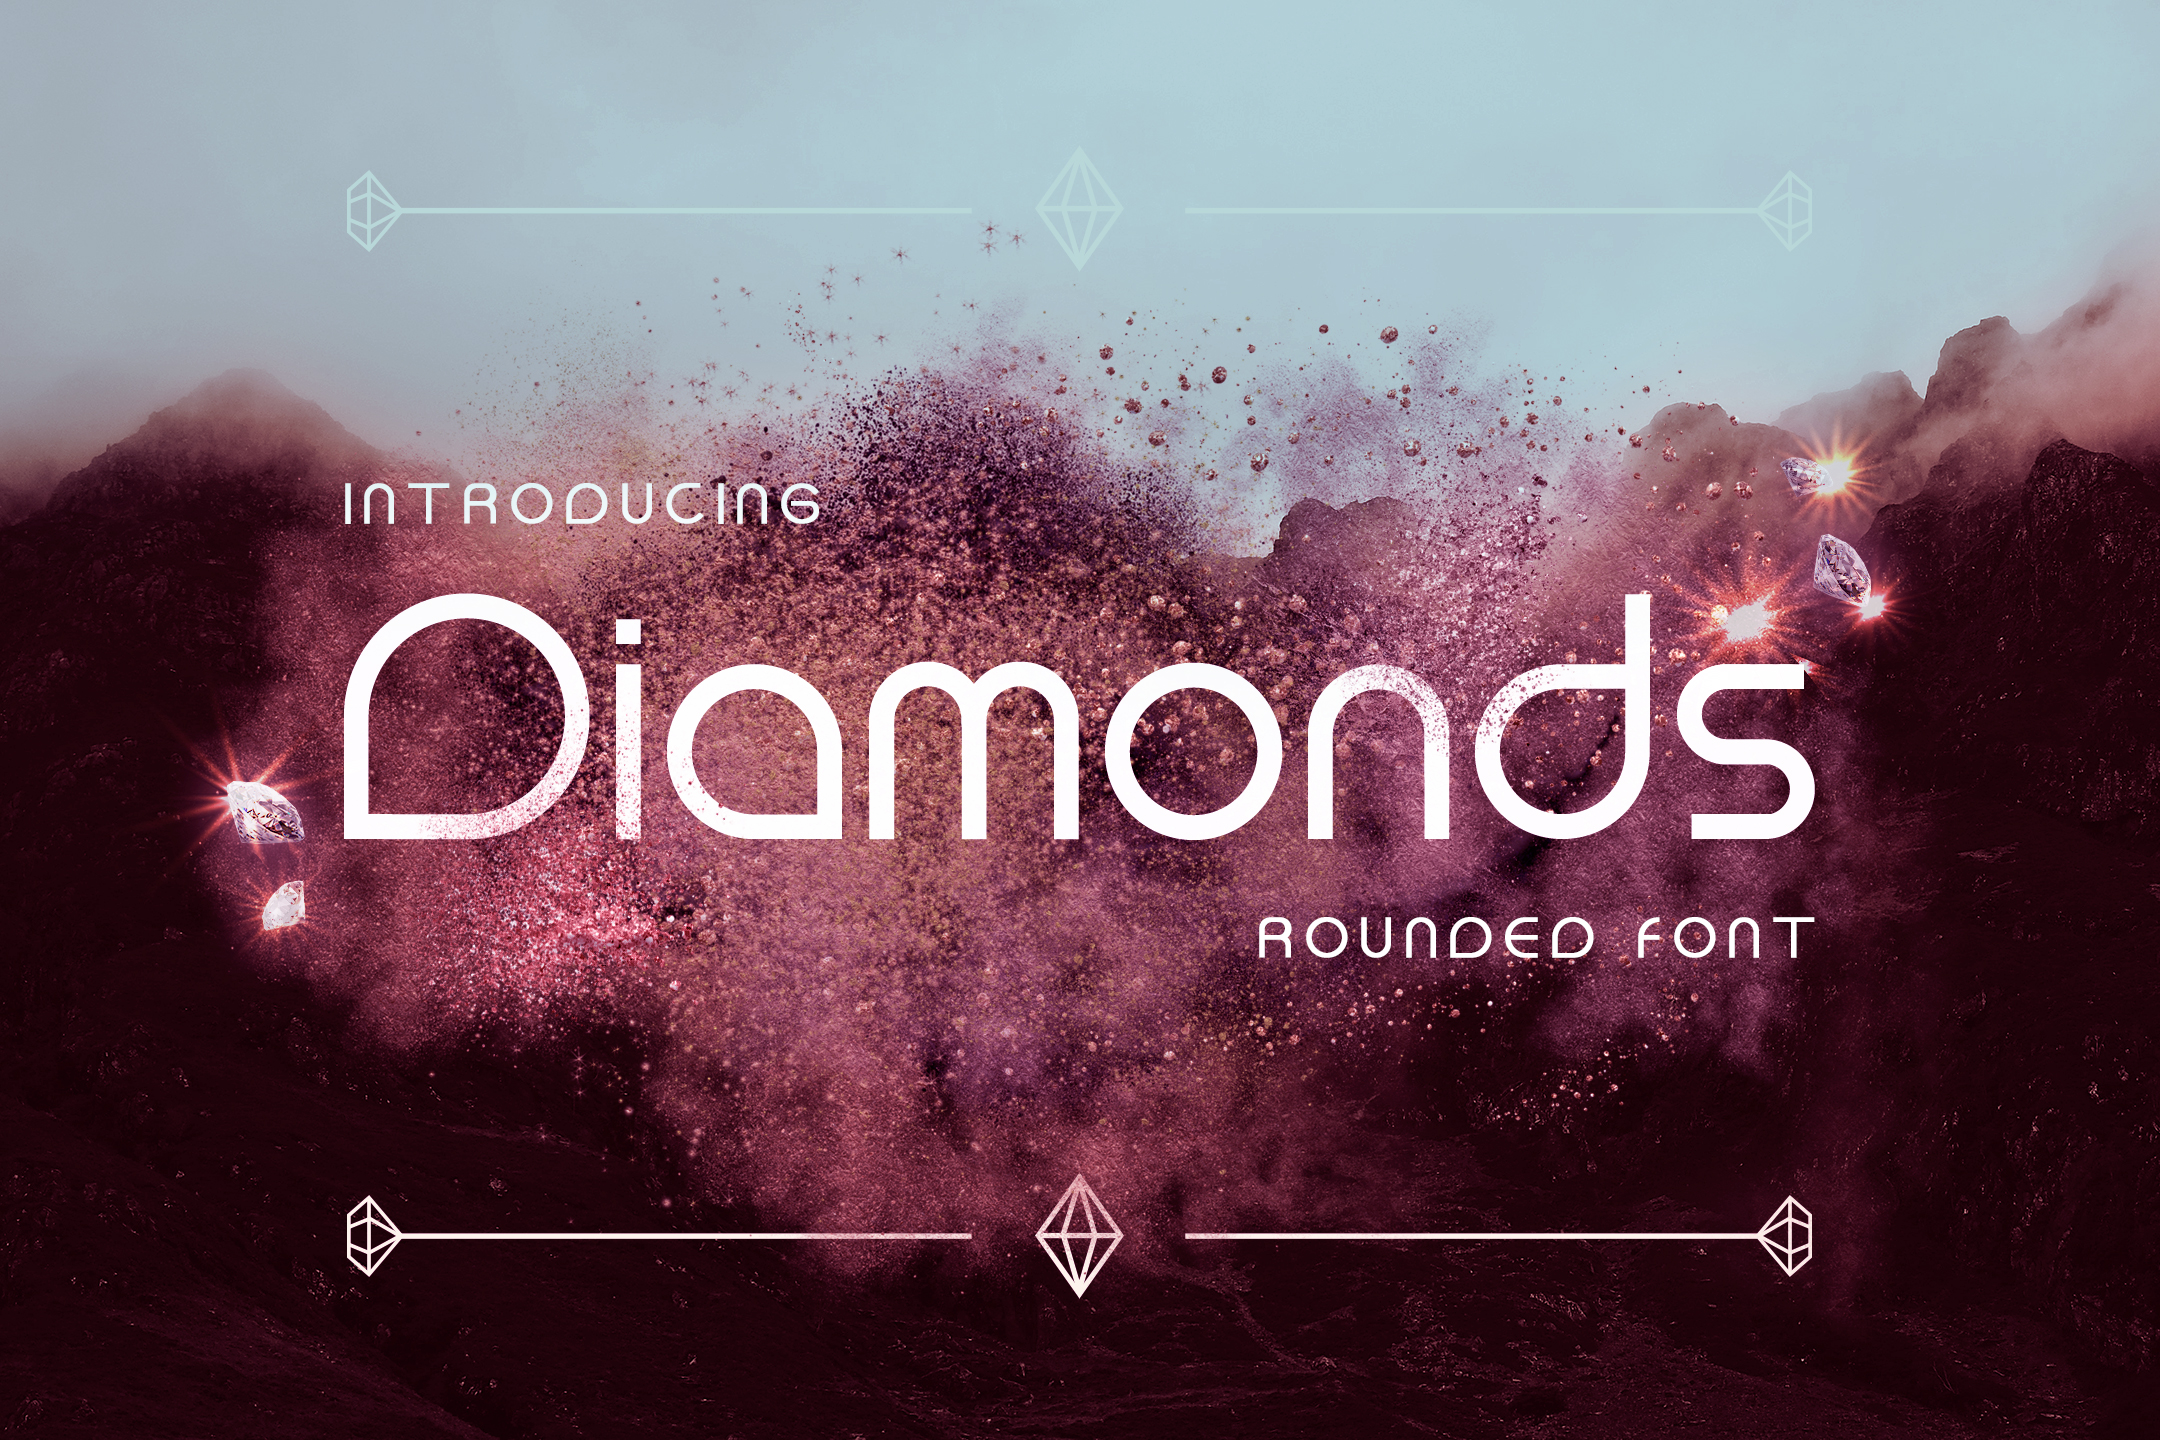 Diamonds example 1